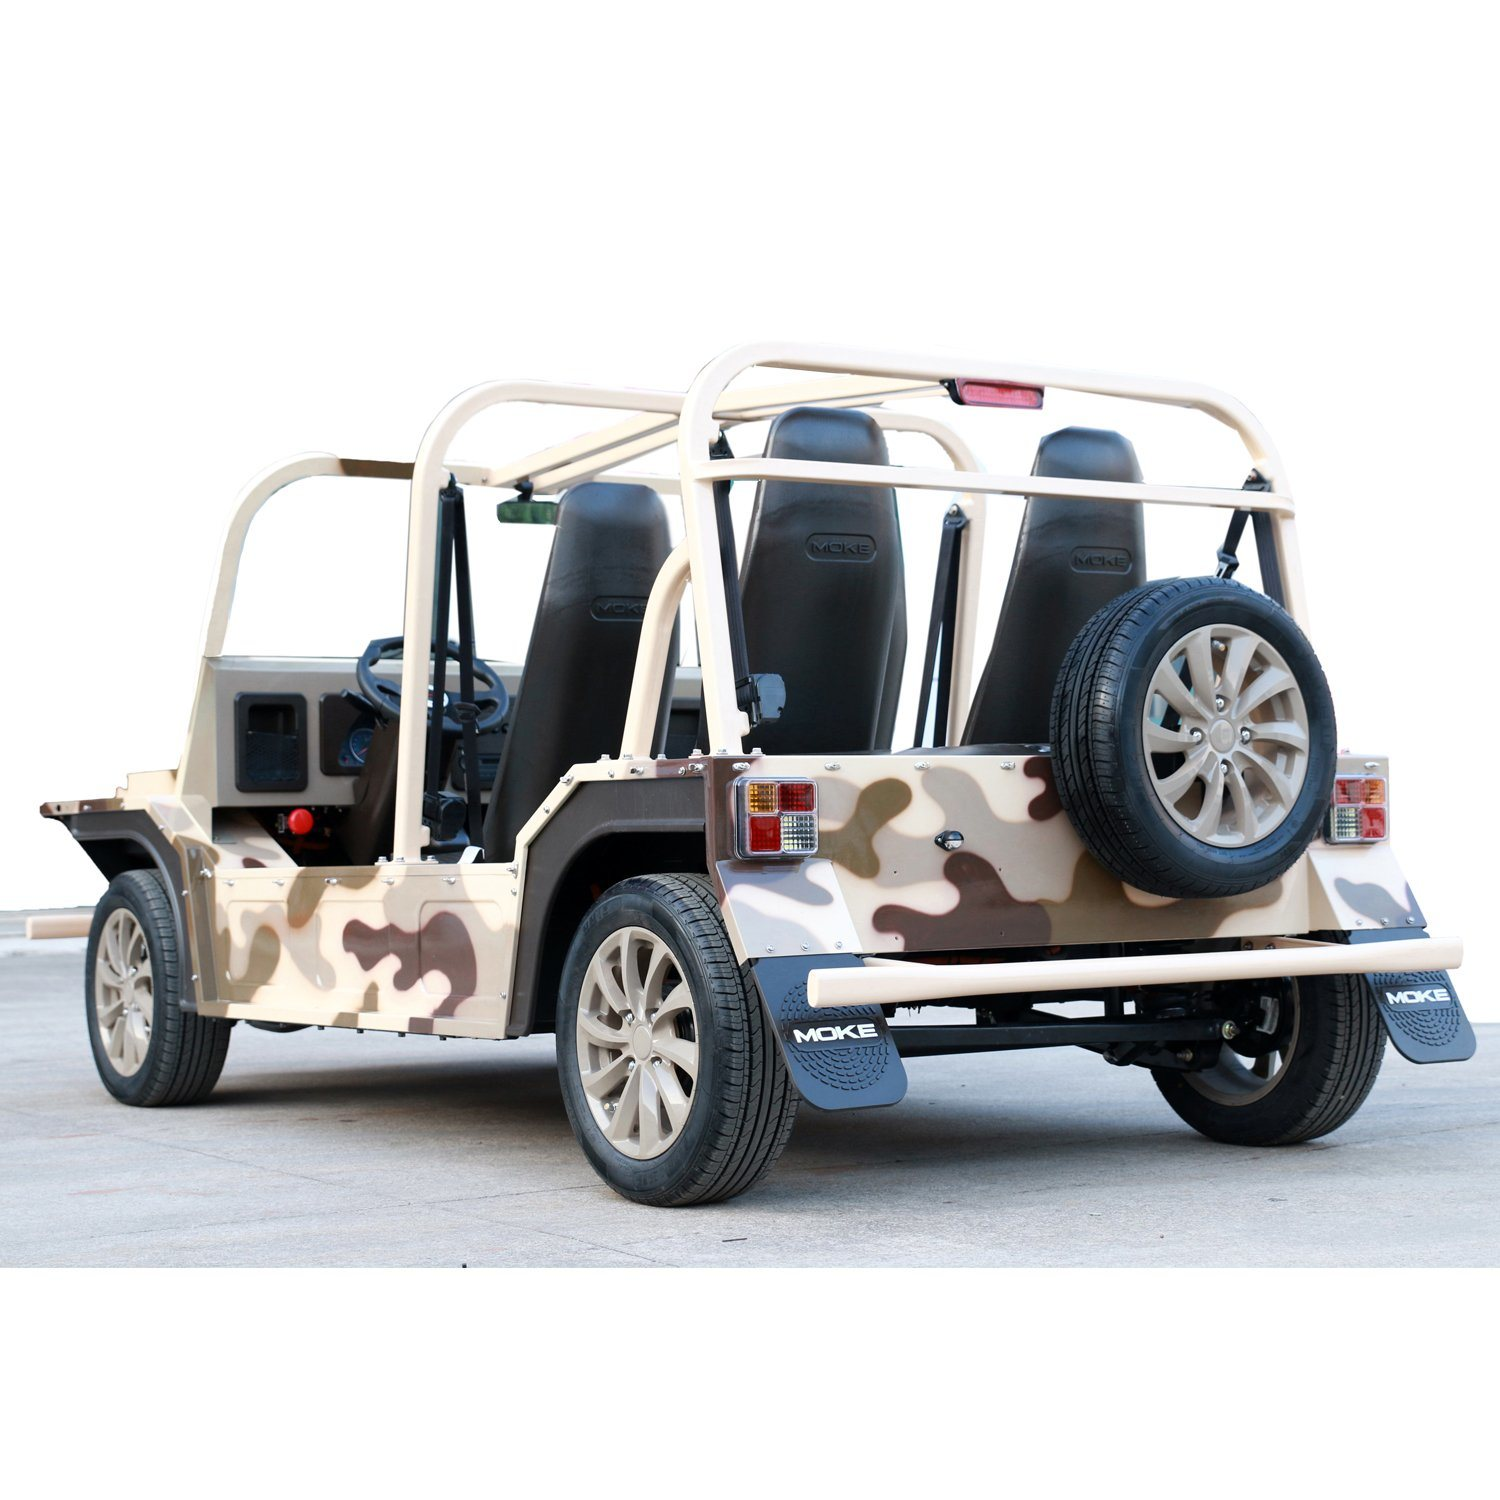 Desert Camouflage Electric Tourist Coach Sightseeing Car with 150km Endurance Mileage